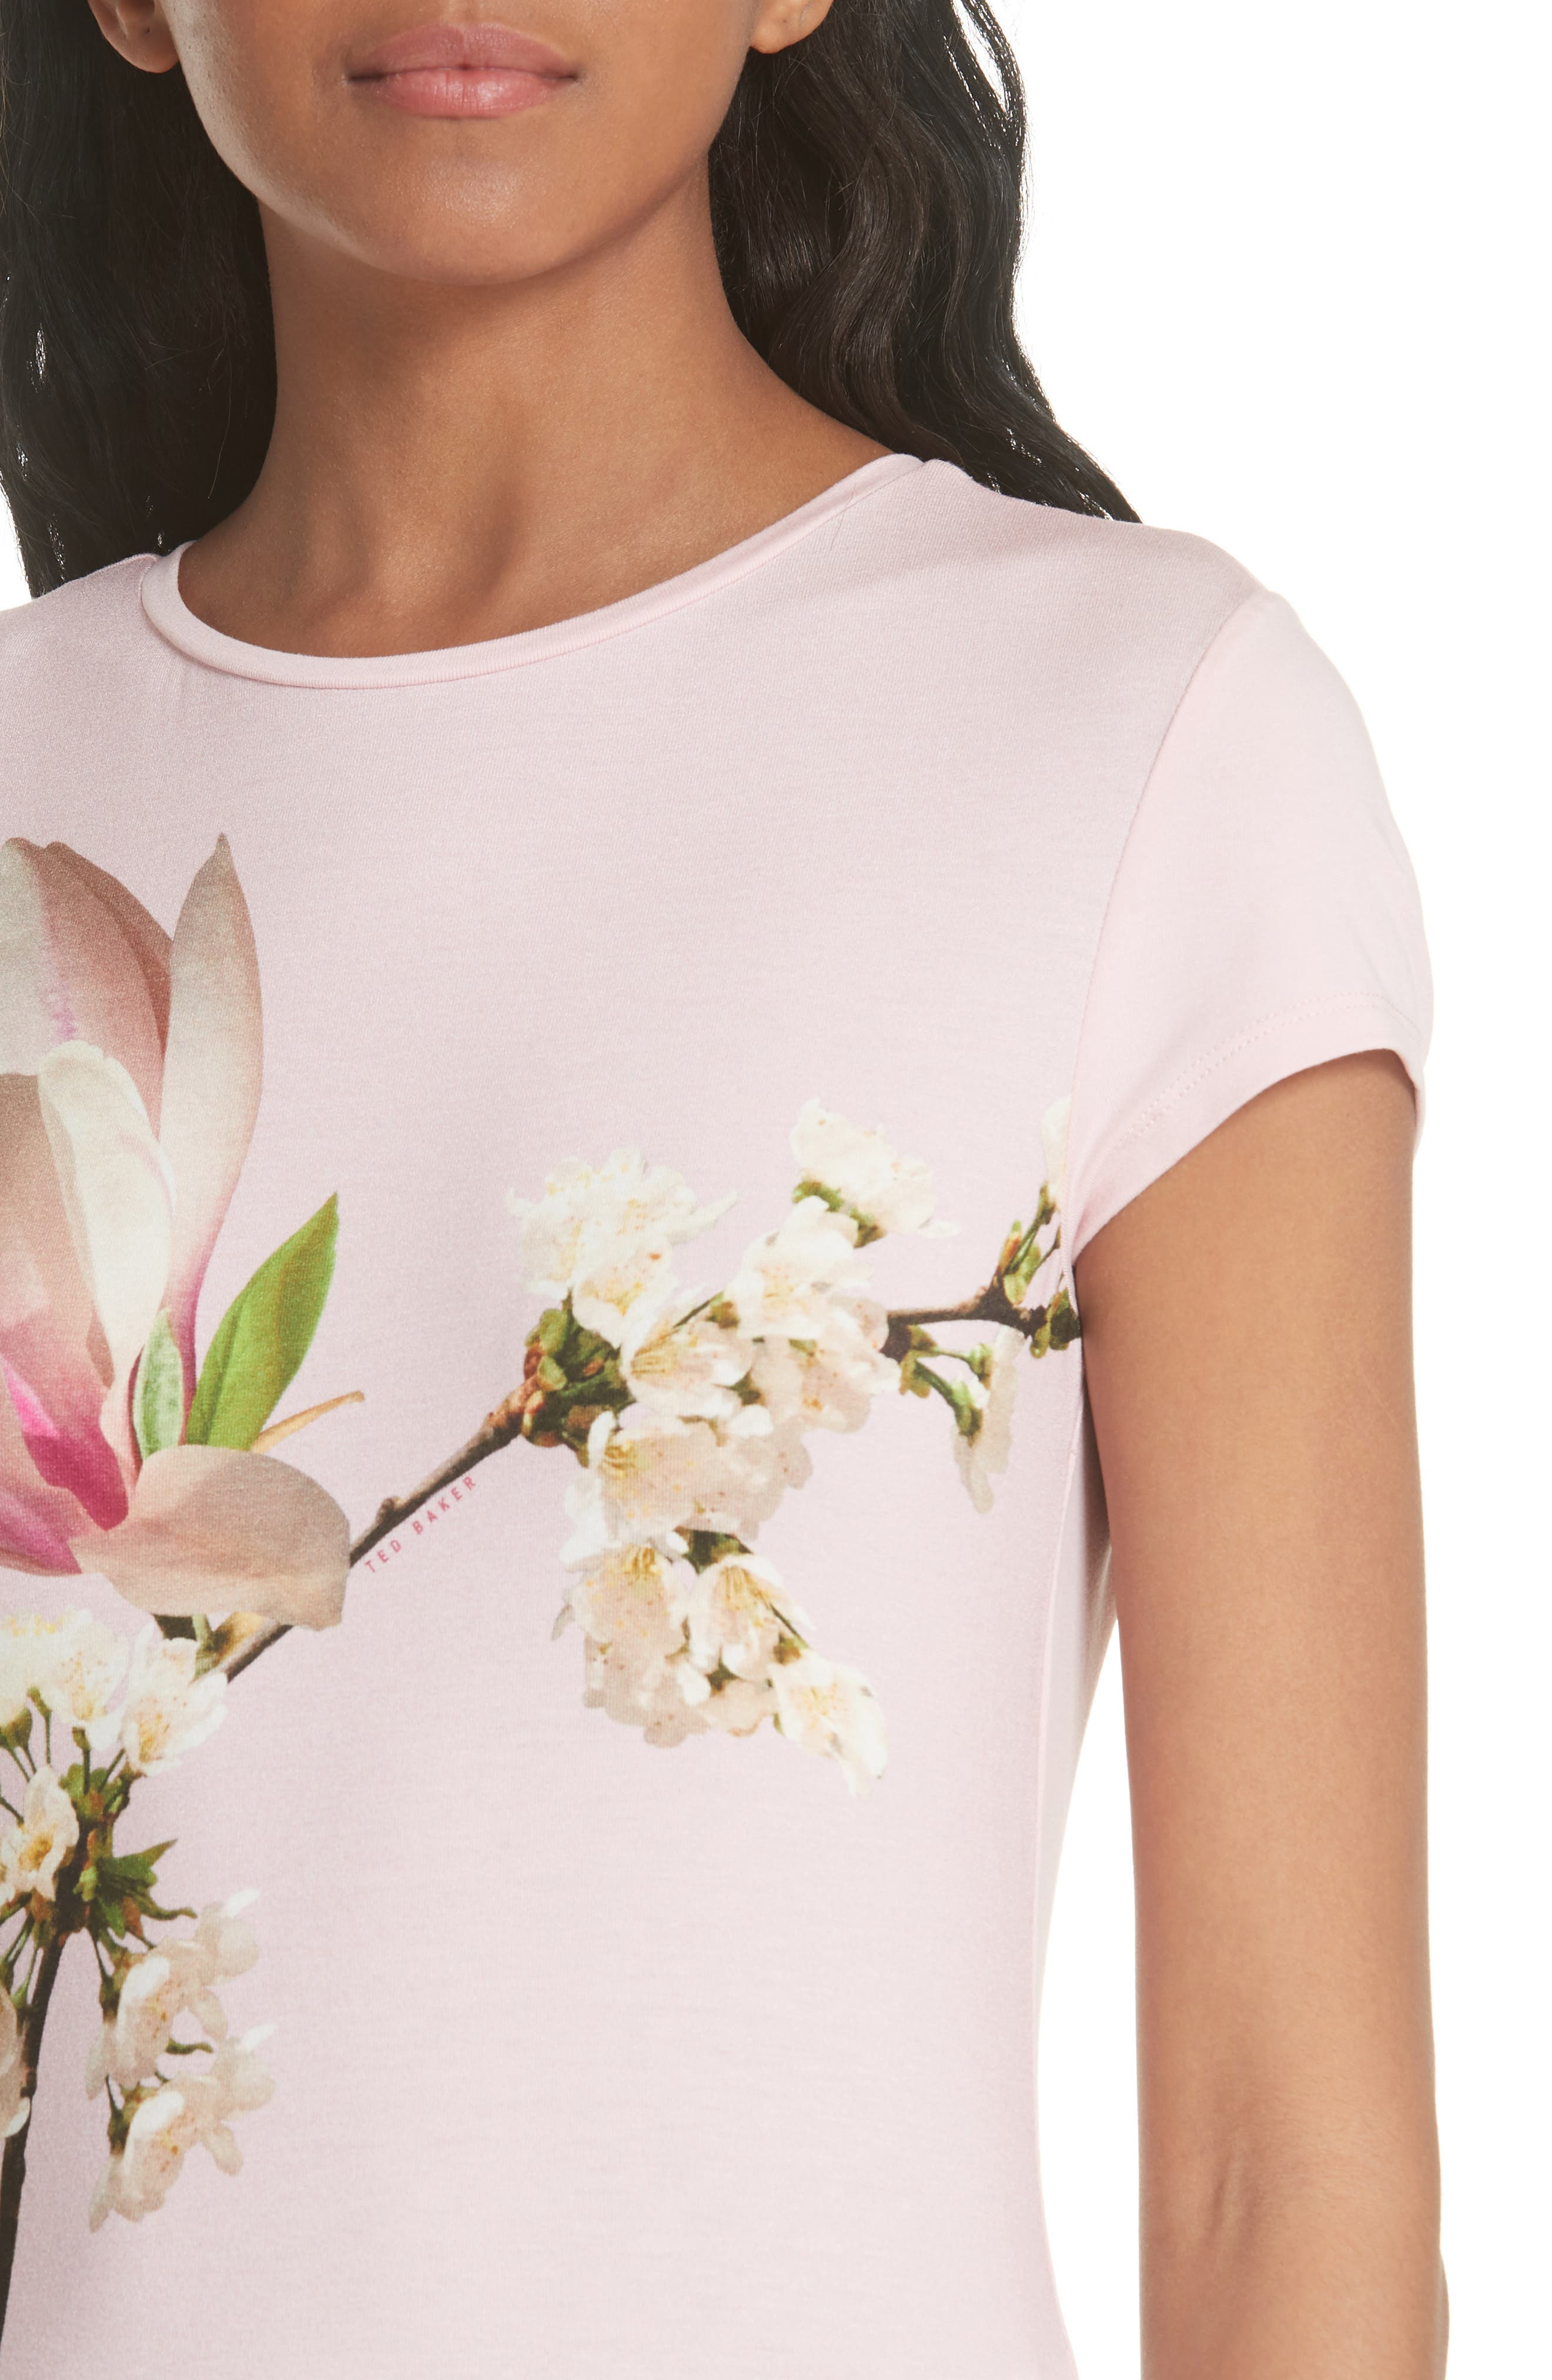 Ameliza Harmony Fitted Tee,                             Alternate thumbnail 4, color,                             Pale Pink